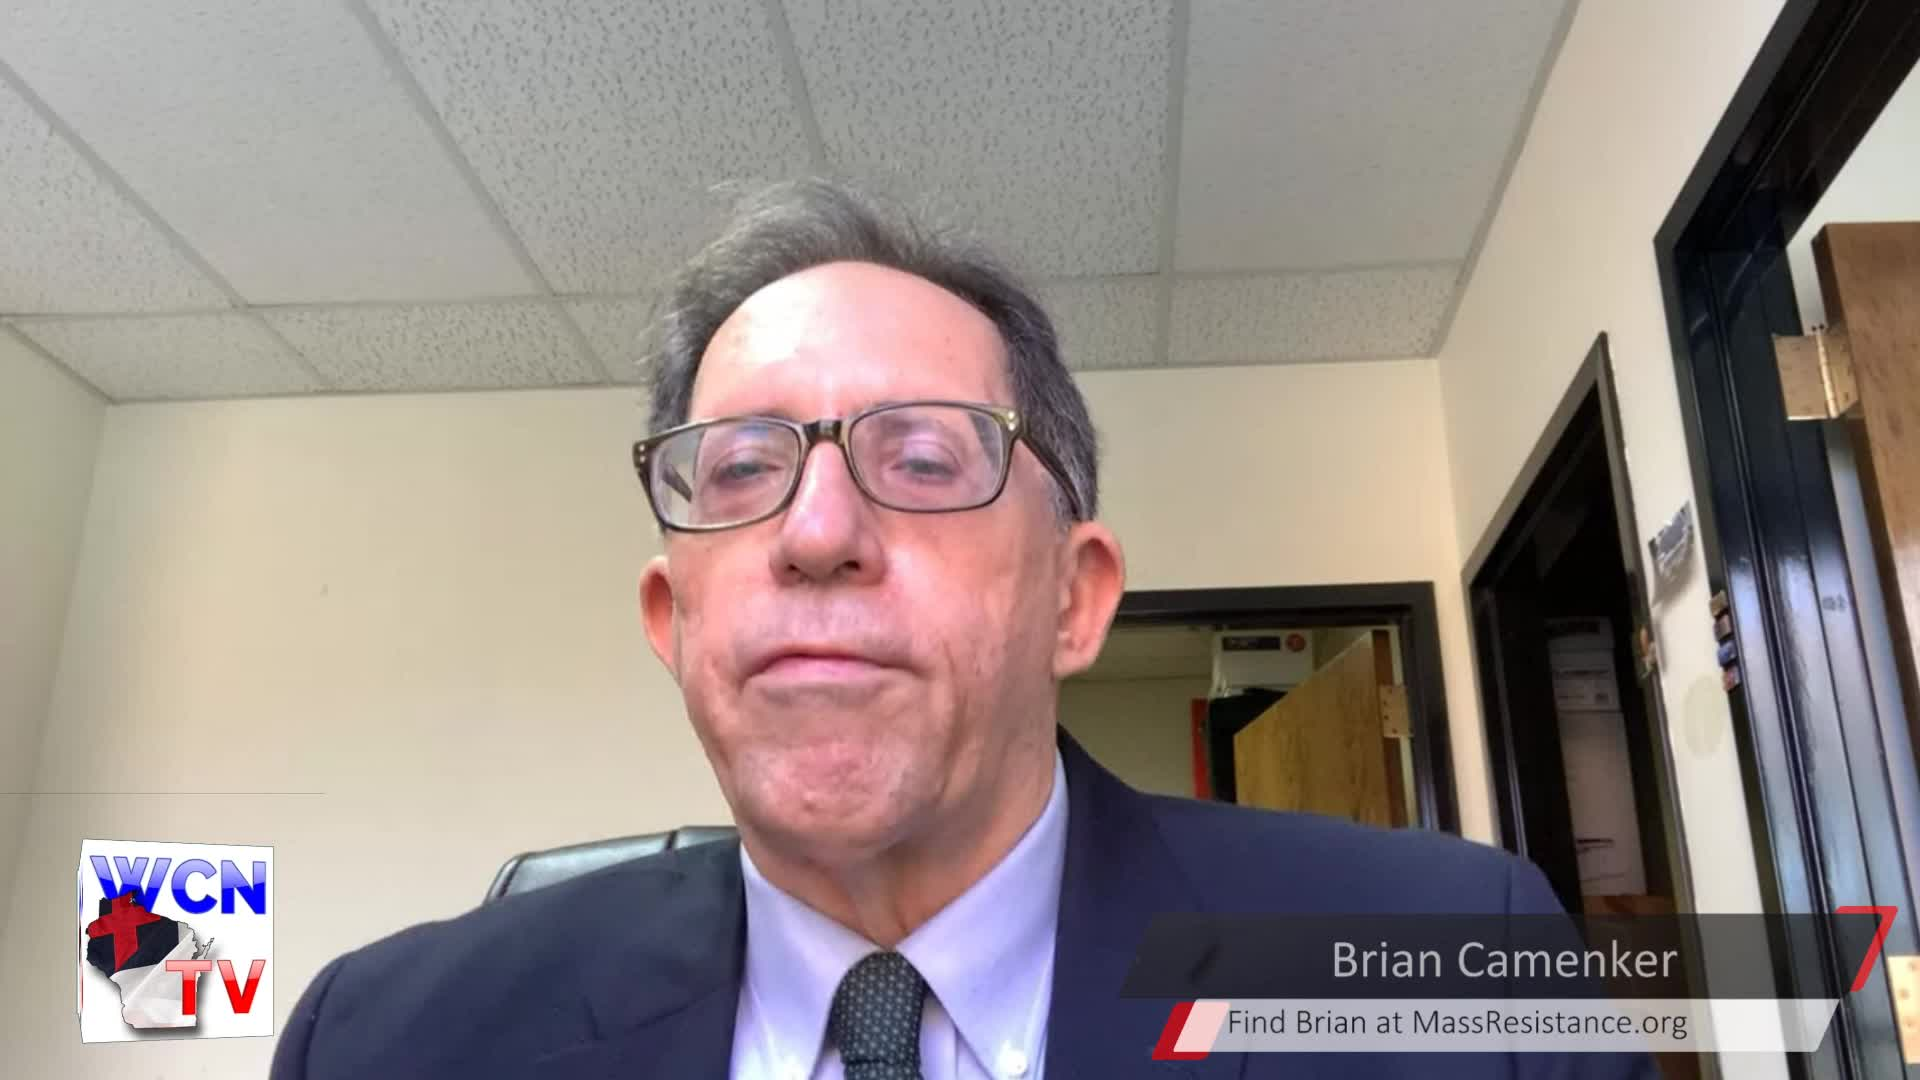 WCN-TV - November 11, 2020 - Mike Heath with Guest Brian Camenker